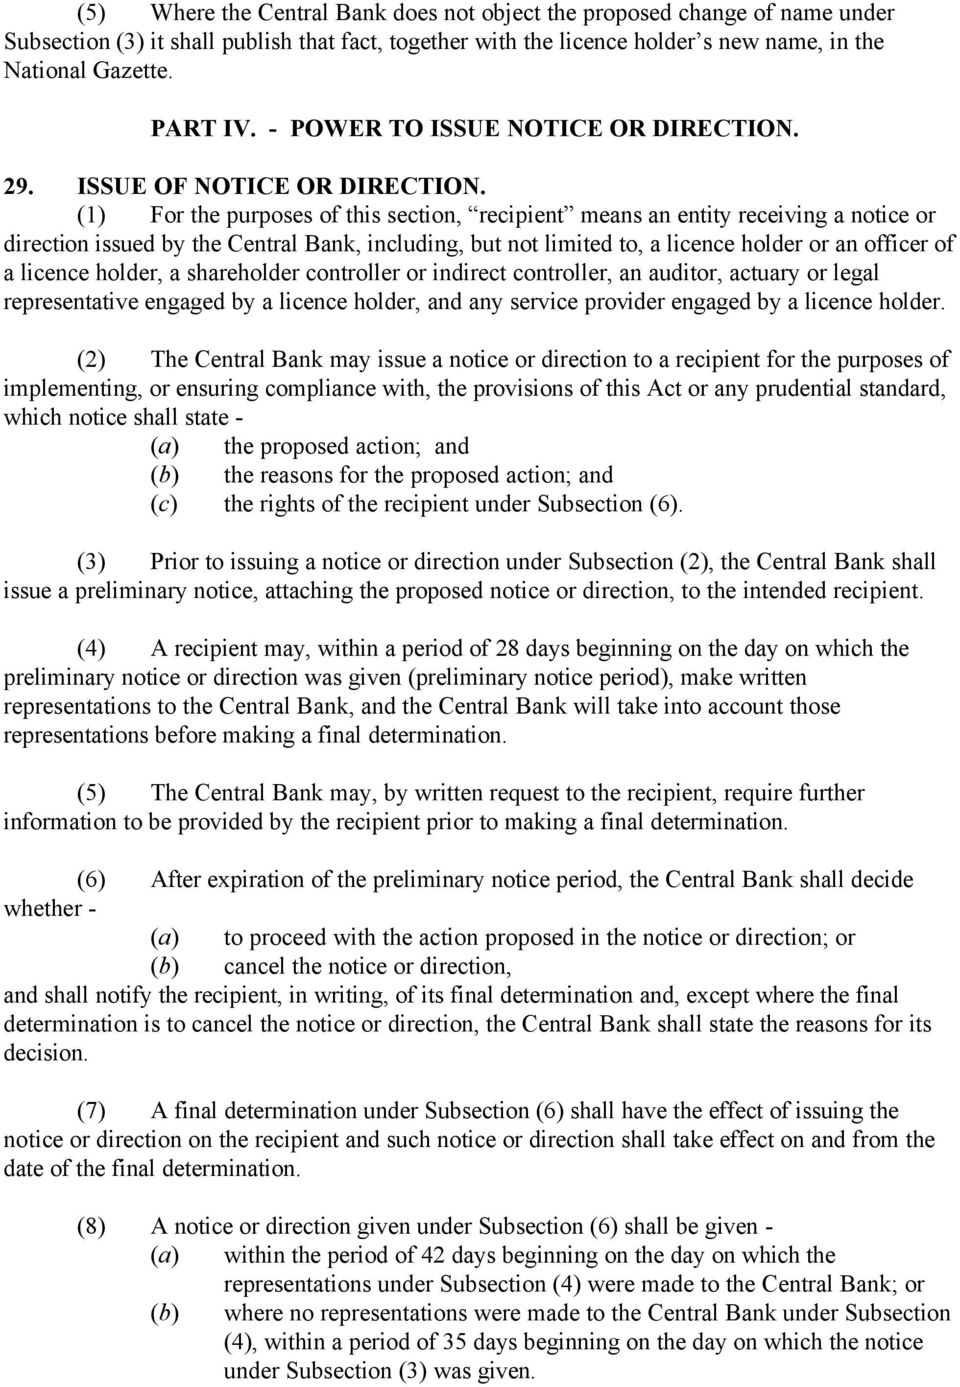 (1) For the purposes of this section, recipient means an entity receiving a notice or direction issued by the Central Bank, including, but not limited to, a licence holder or an officer of a licence